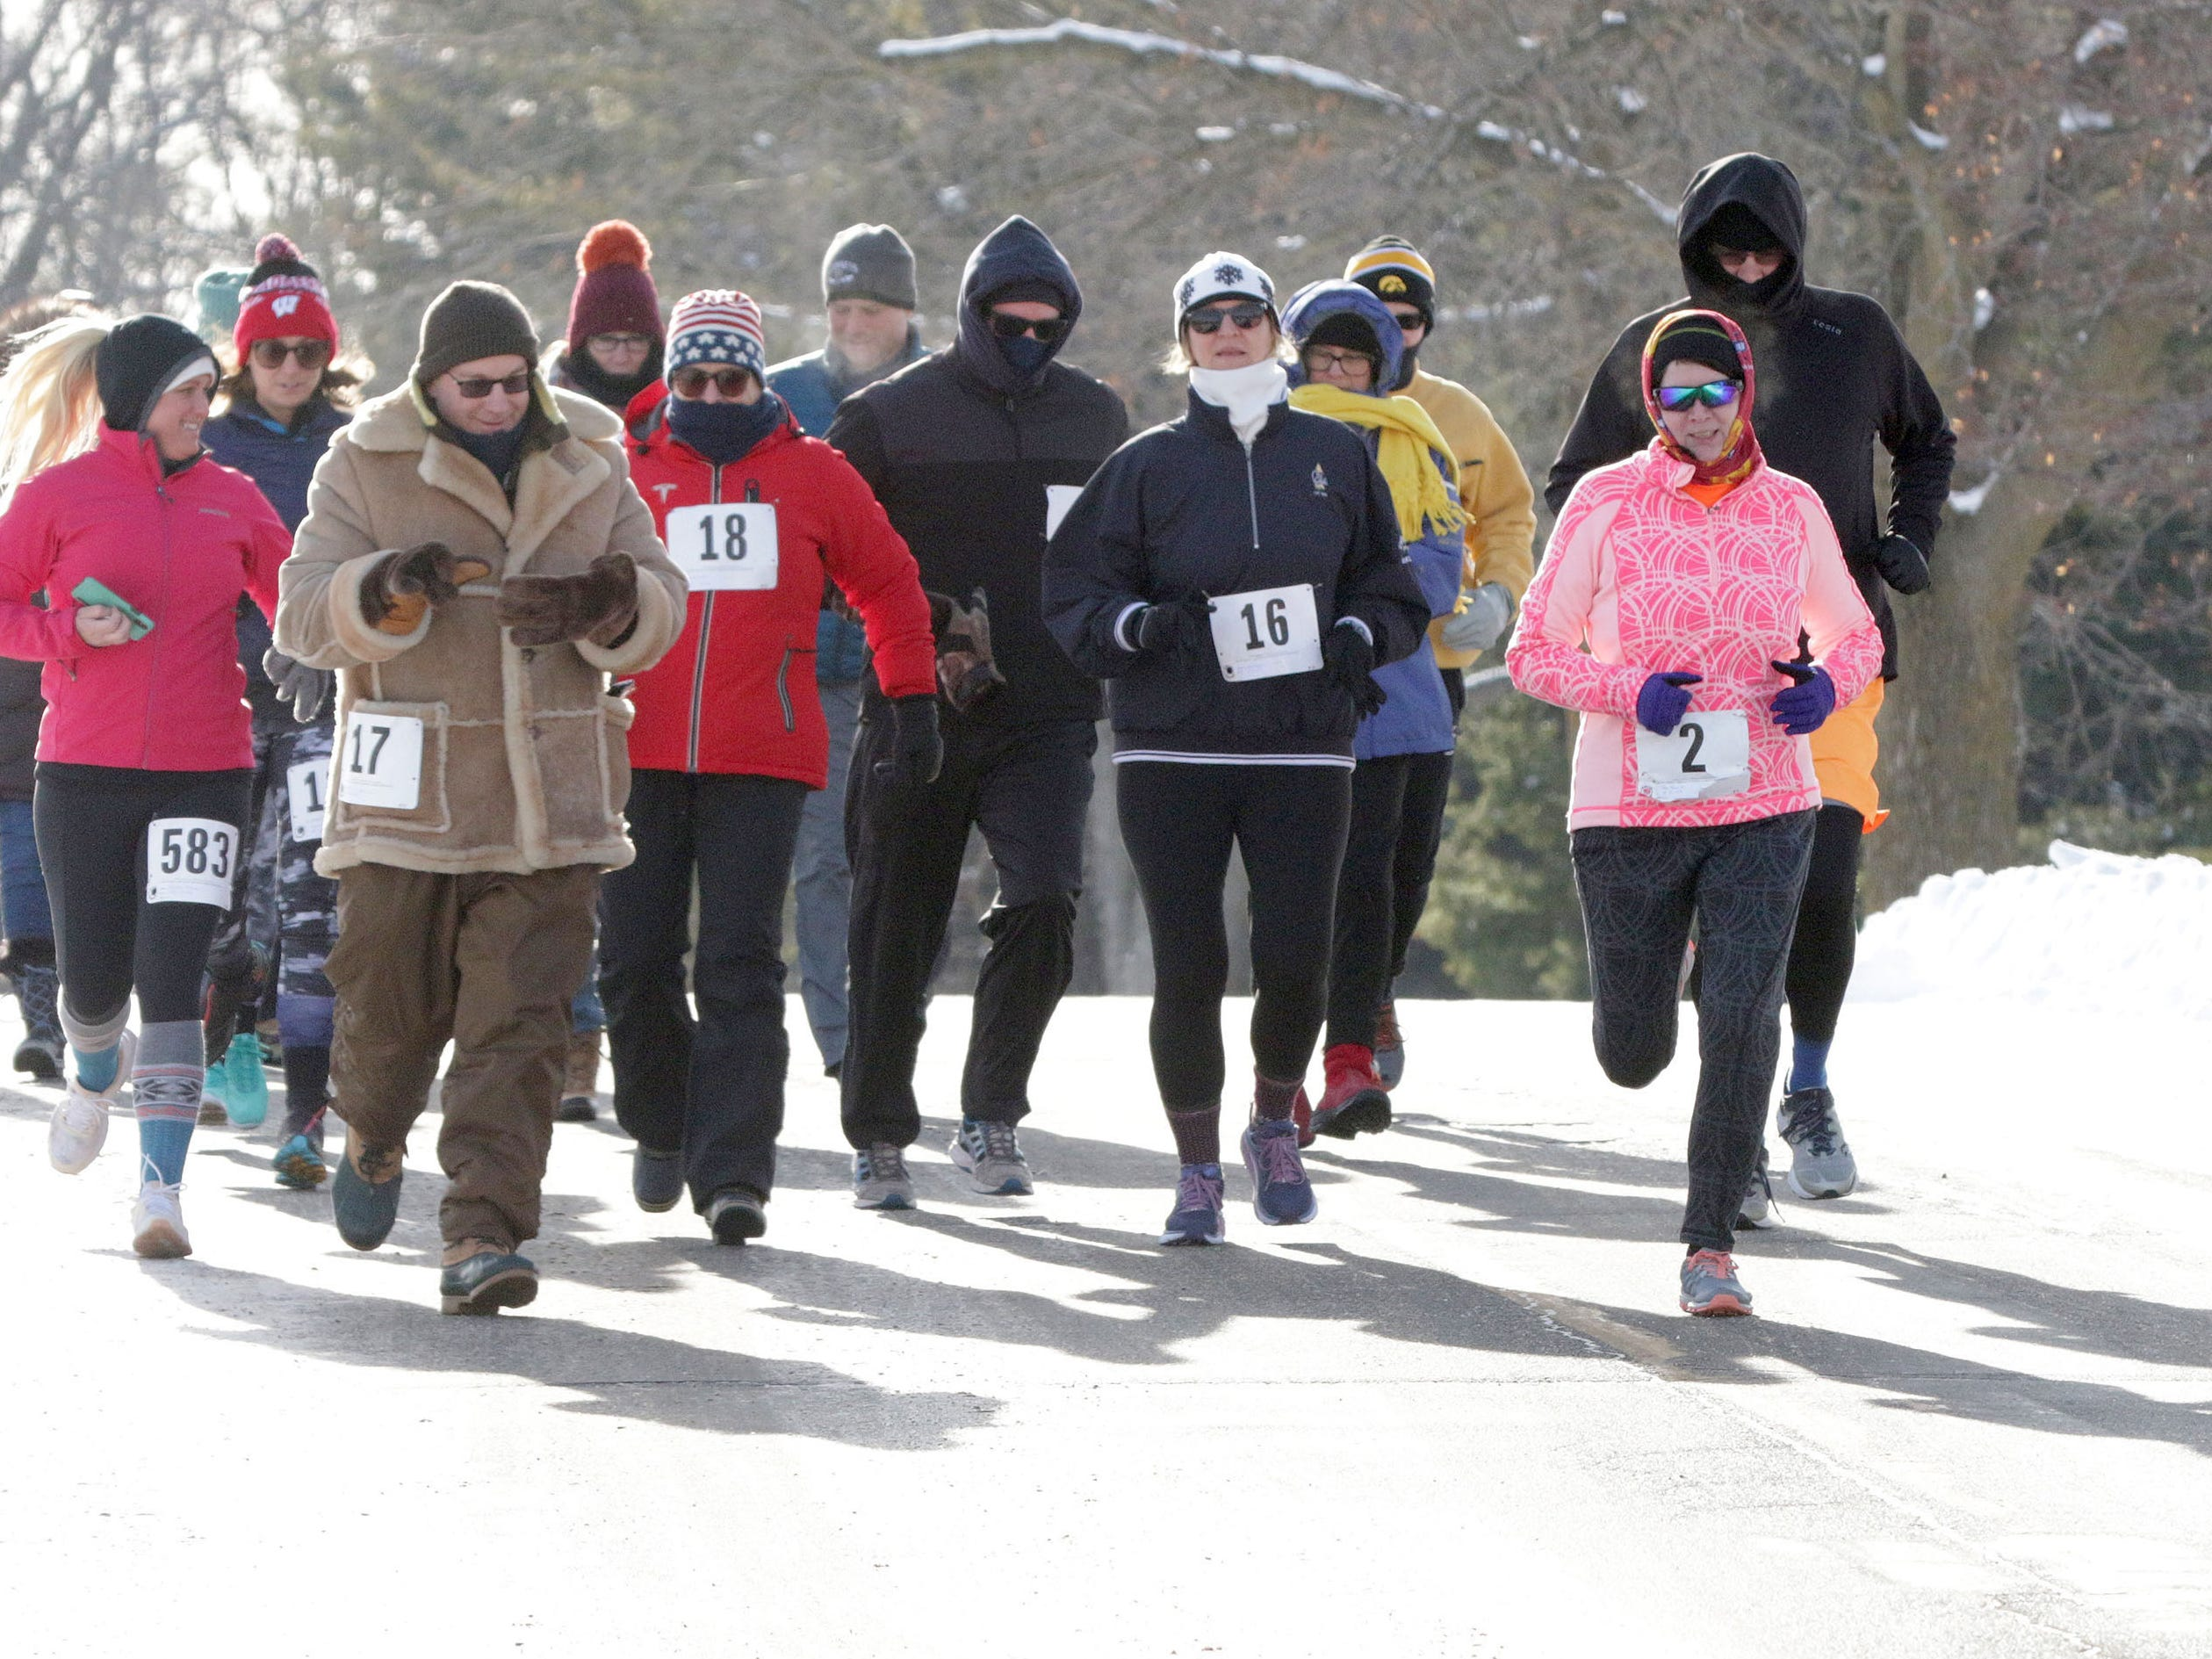 Runners at the start of the Schneelauf Riun, Saturday, January 26, 2019, in Elkhart Lake, Wis. The event is part of Schnee Days in Elkhart Lake.